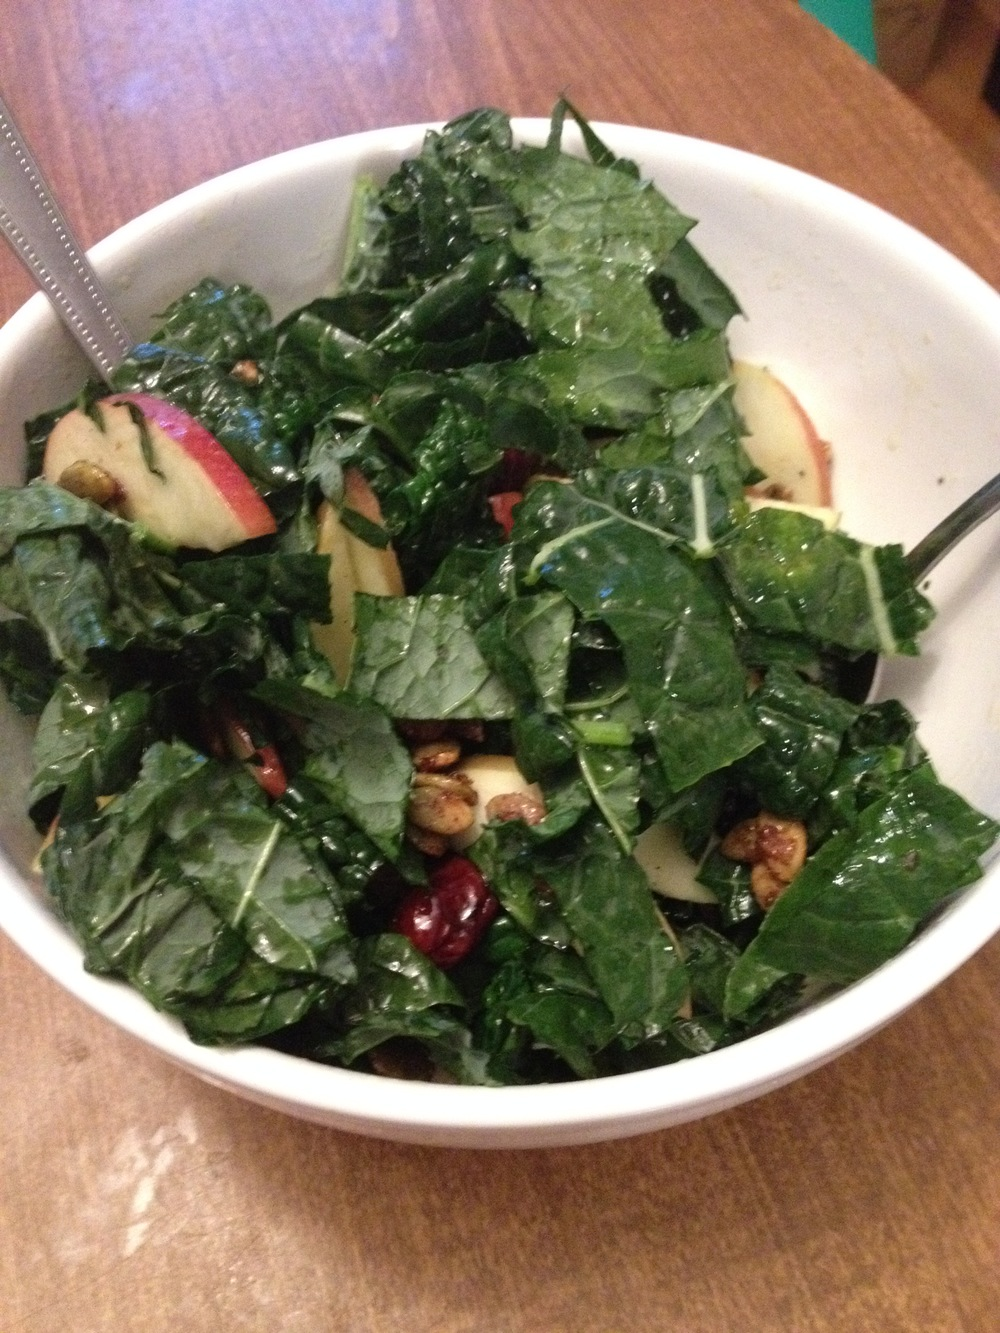 Kale, apples, dried cranberries and candied pepitas with cider dressing